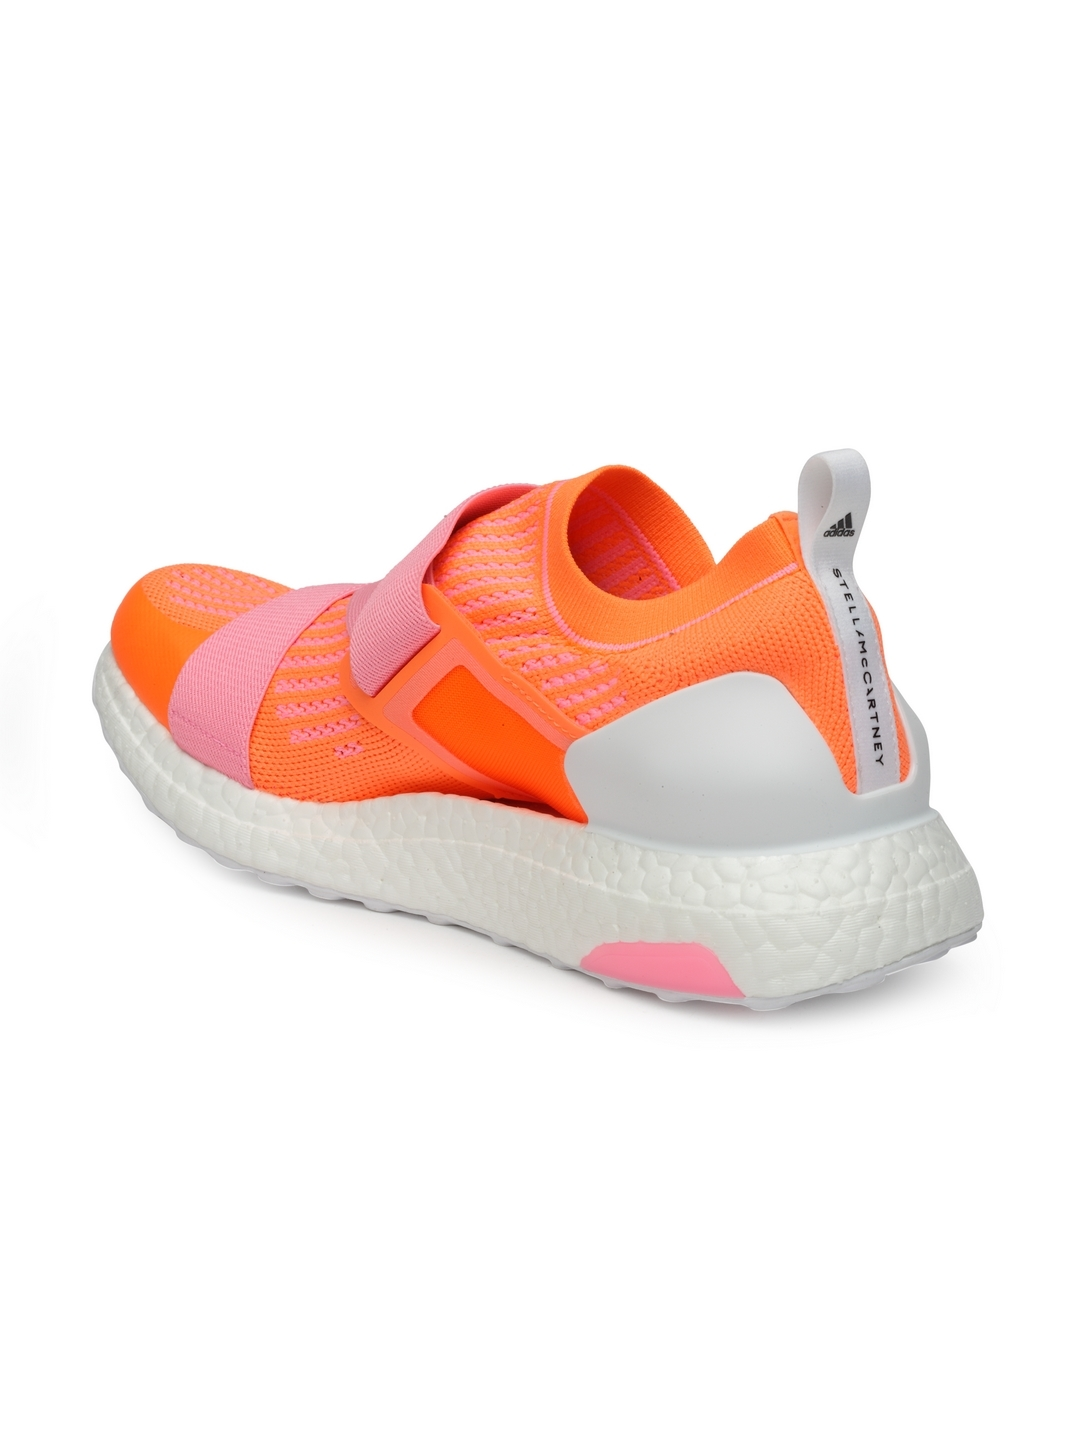 a7ac39a30b4 Buy Stella McCartney By ADIDAS Women Orange Ultraboost X Running ...